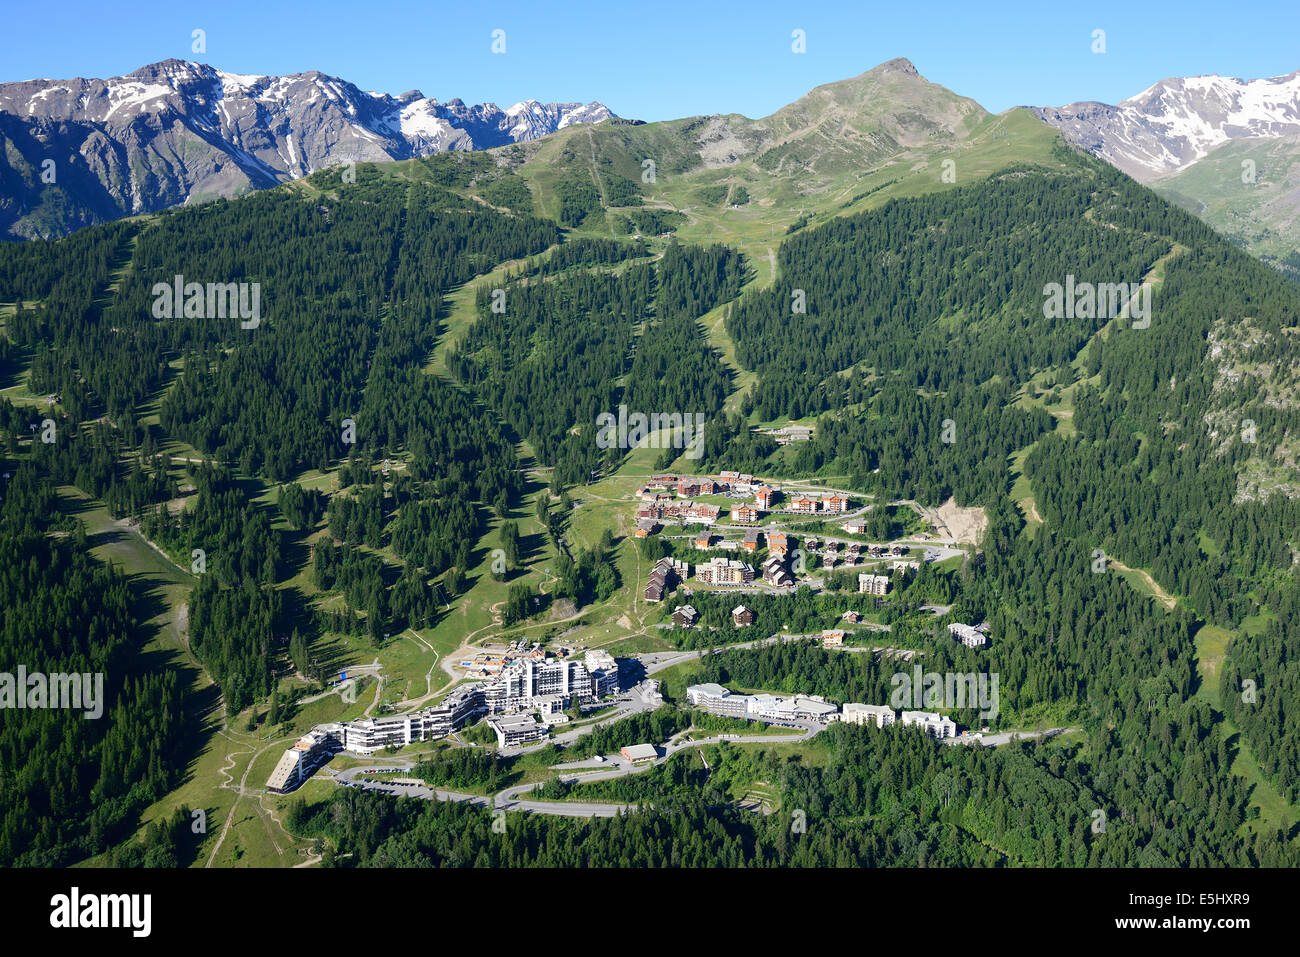 SKI RESORT OF PUY-SAINT-VINCENT IN THE SUMMER (aerial view). Les Ecrins Massif, Hautes-Alpes, France. - Stock Image